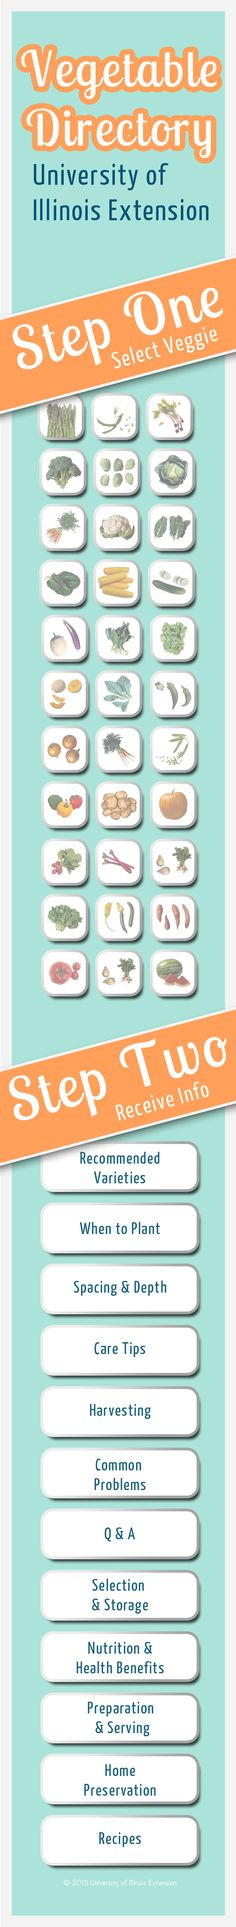 Pin now for gardening season! An excellent veggie gardening resource from University of Illinois Extension.